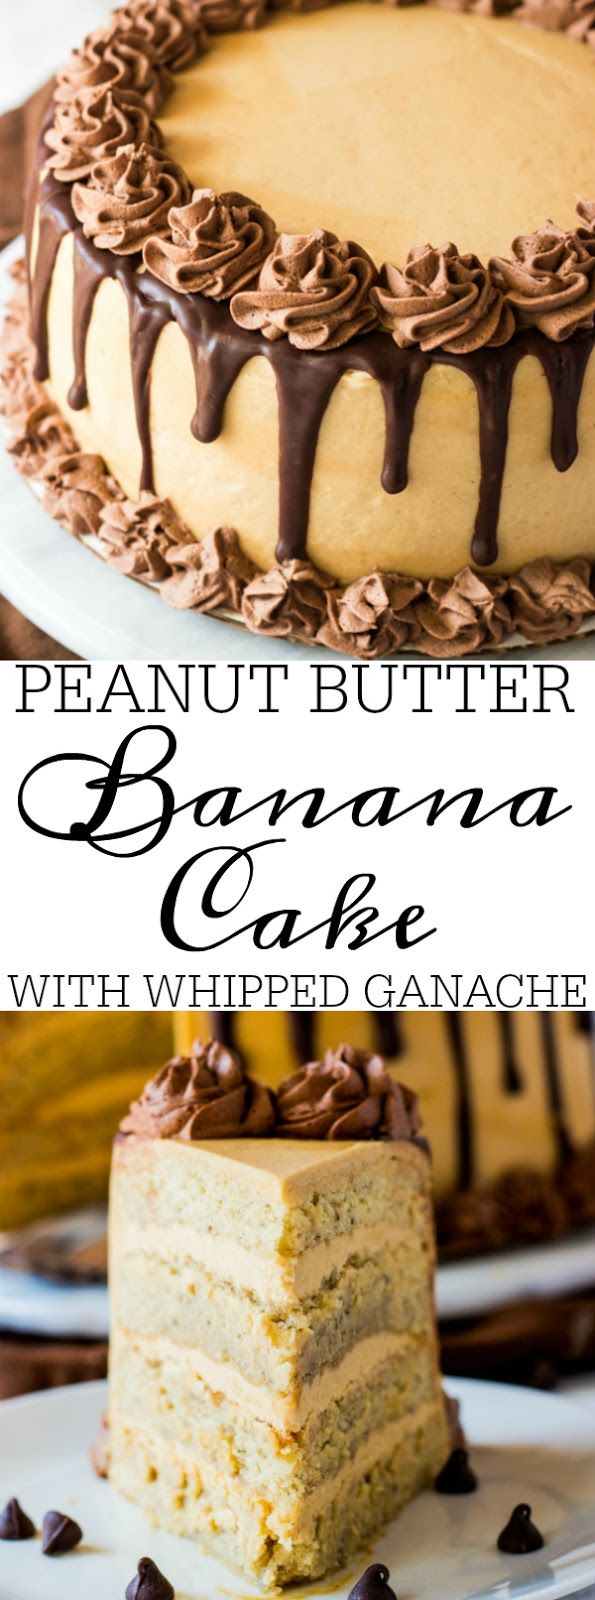 Peanut Butter Banana Cake with Whipped Ganache Recipe - Dishes and Cooking